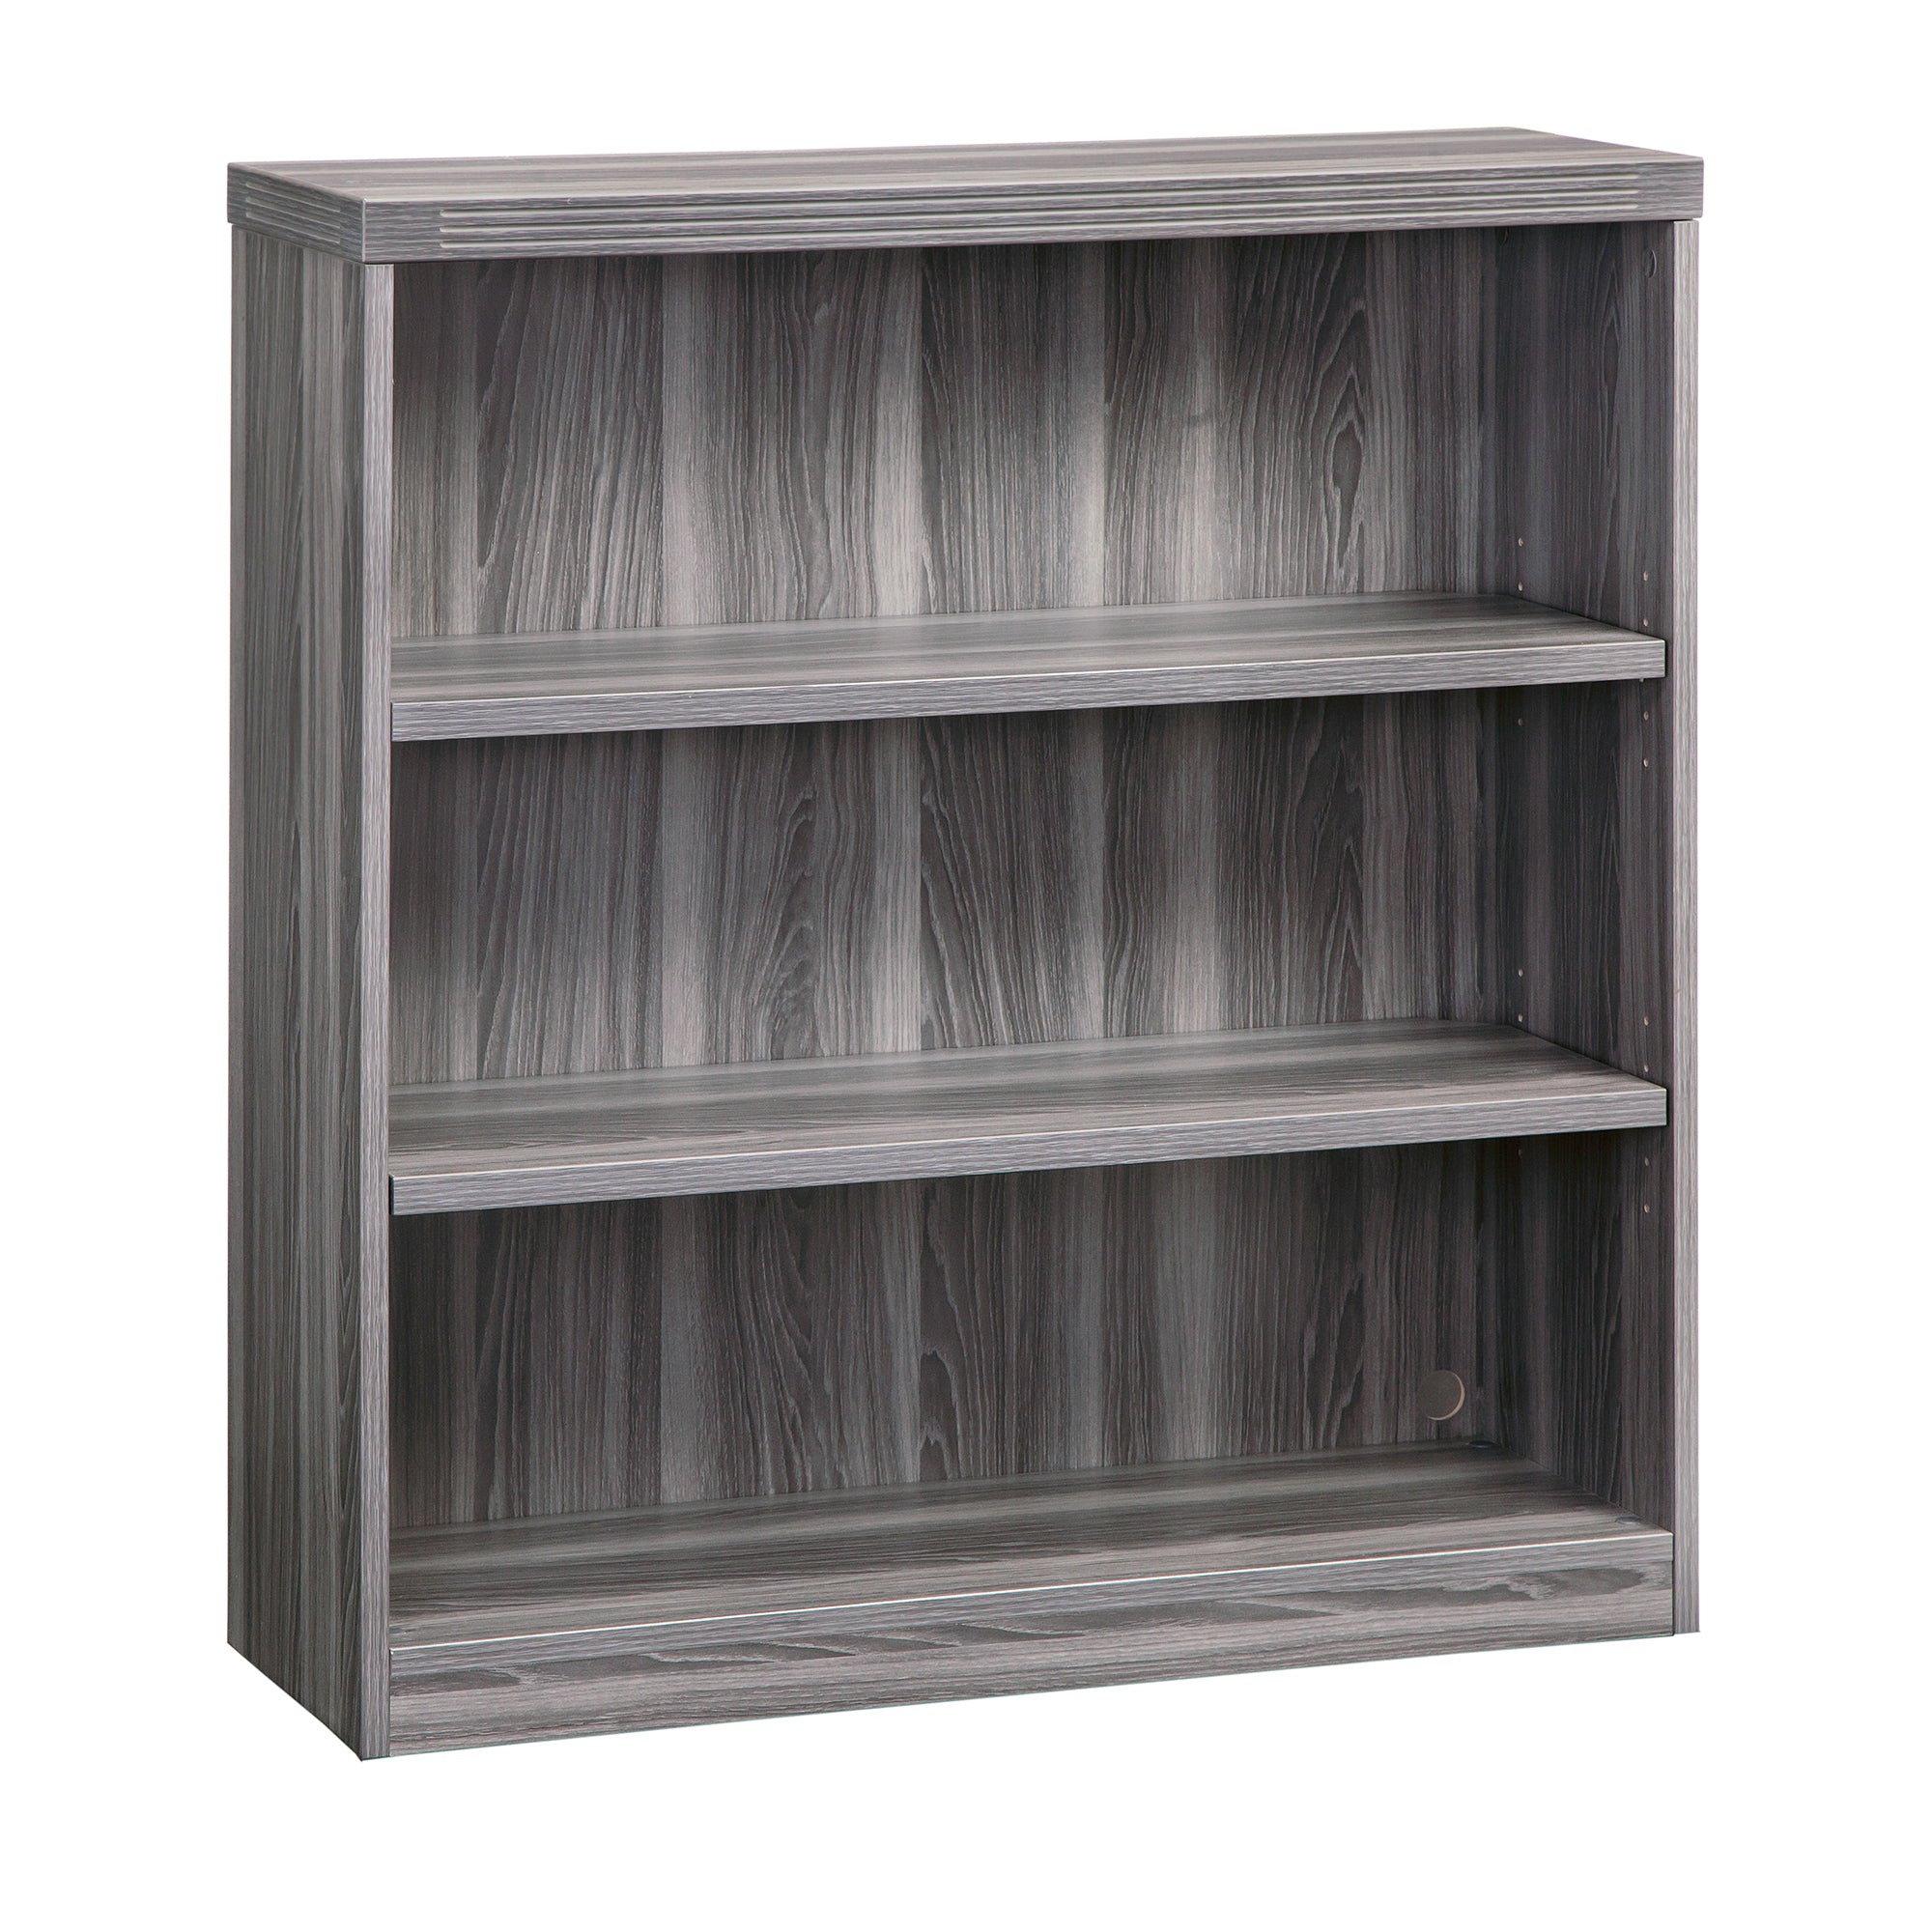 39 Bookcase With Cable Management And Color Options